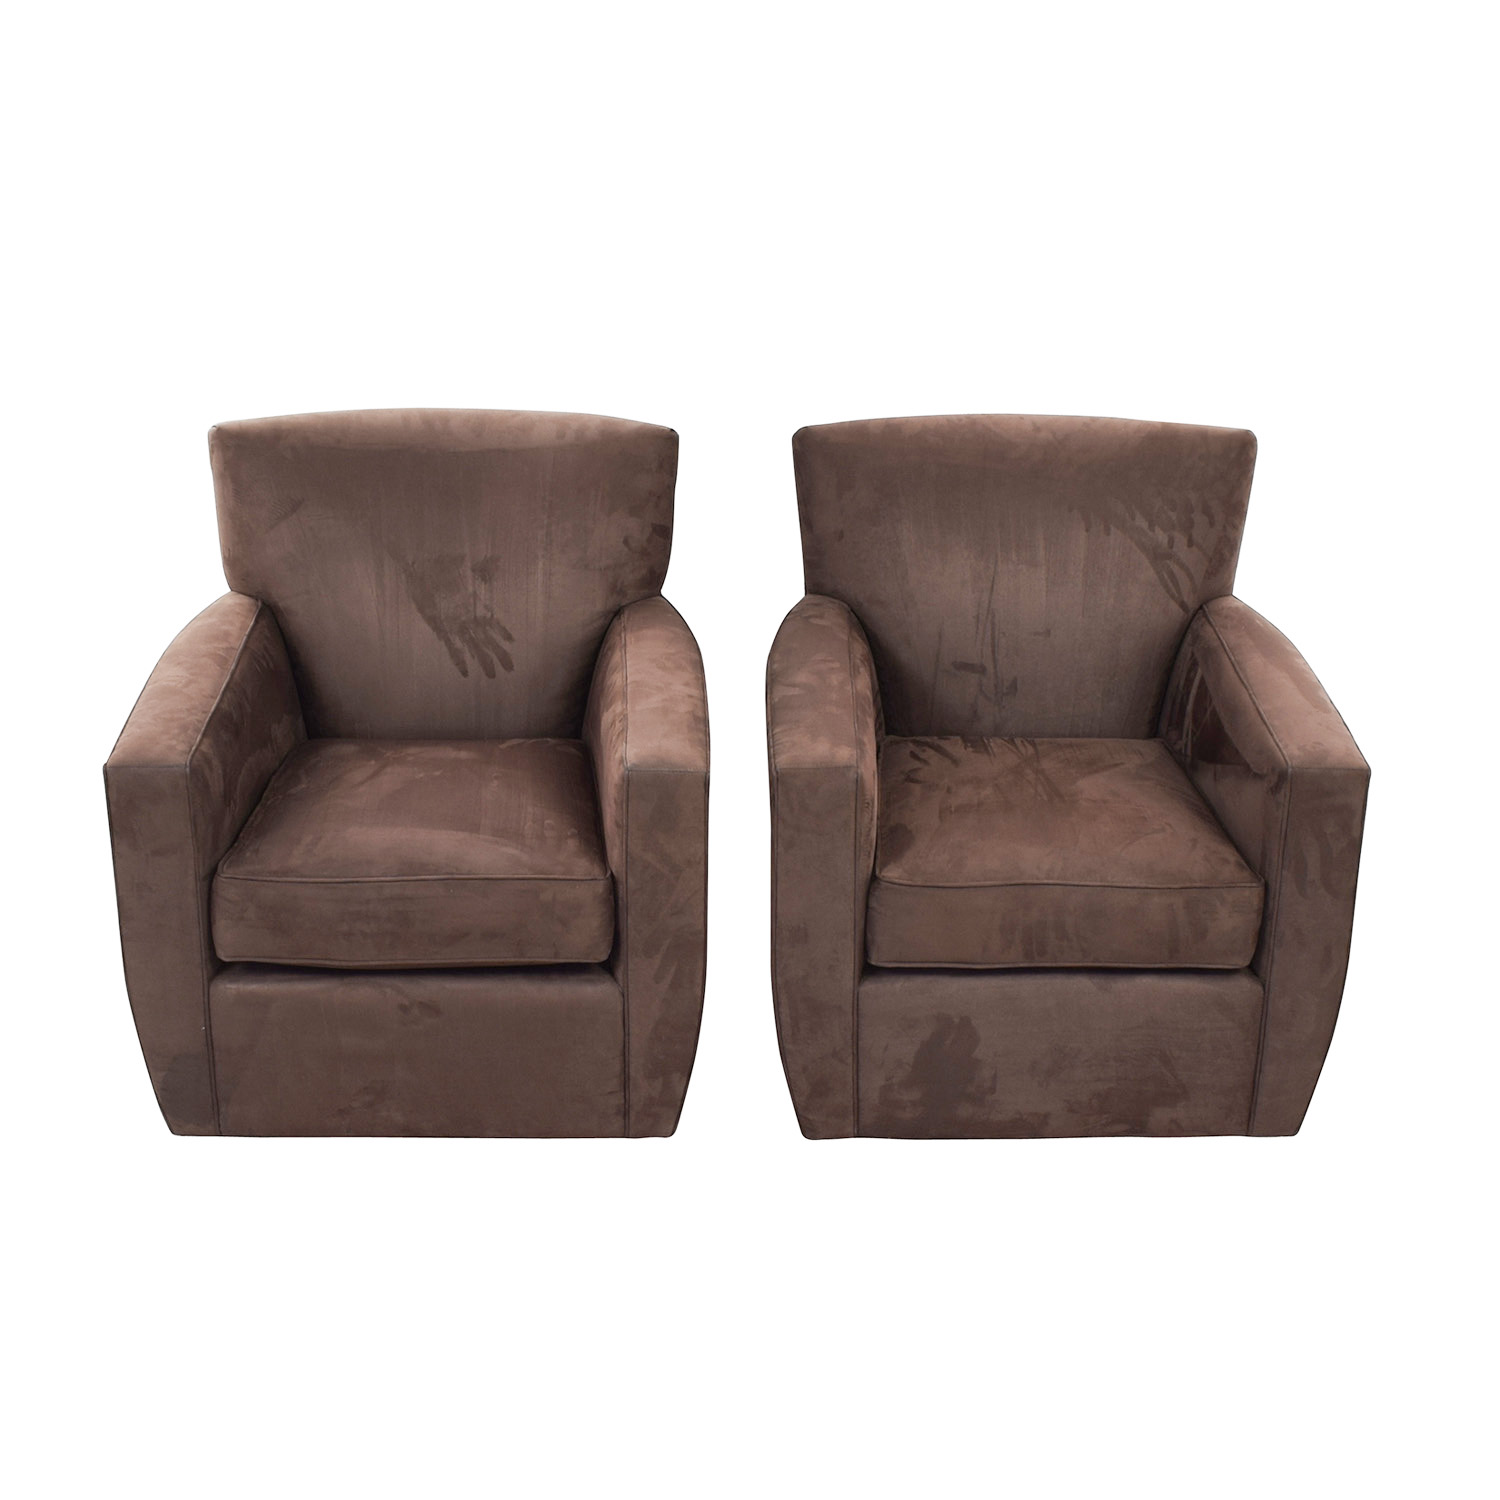 Delicieux 88% OFF   Crate U0026 Barrel Crate U0026 Barrel Clara Brown Swivel Chairs / Chairs